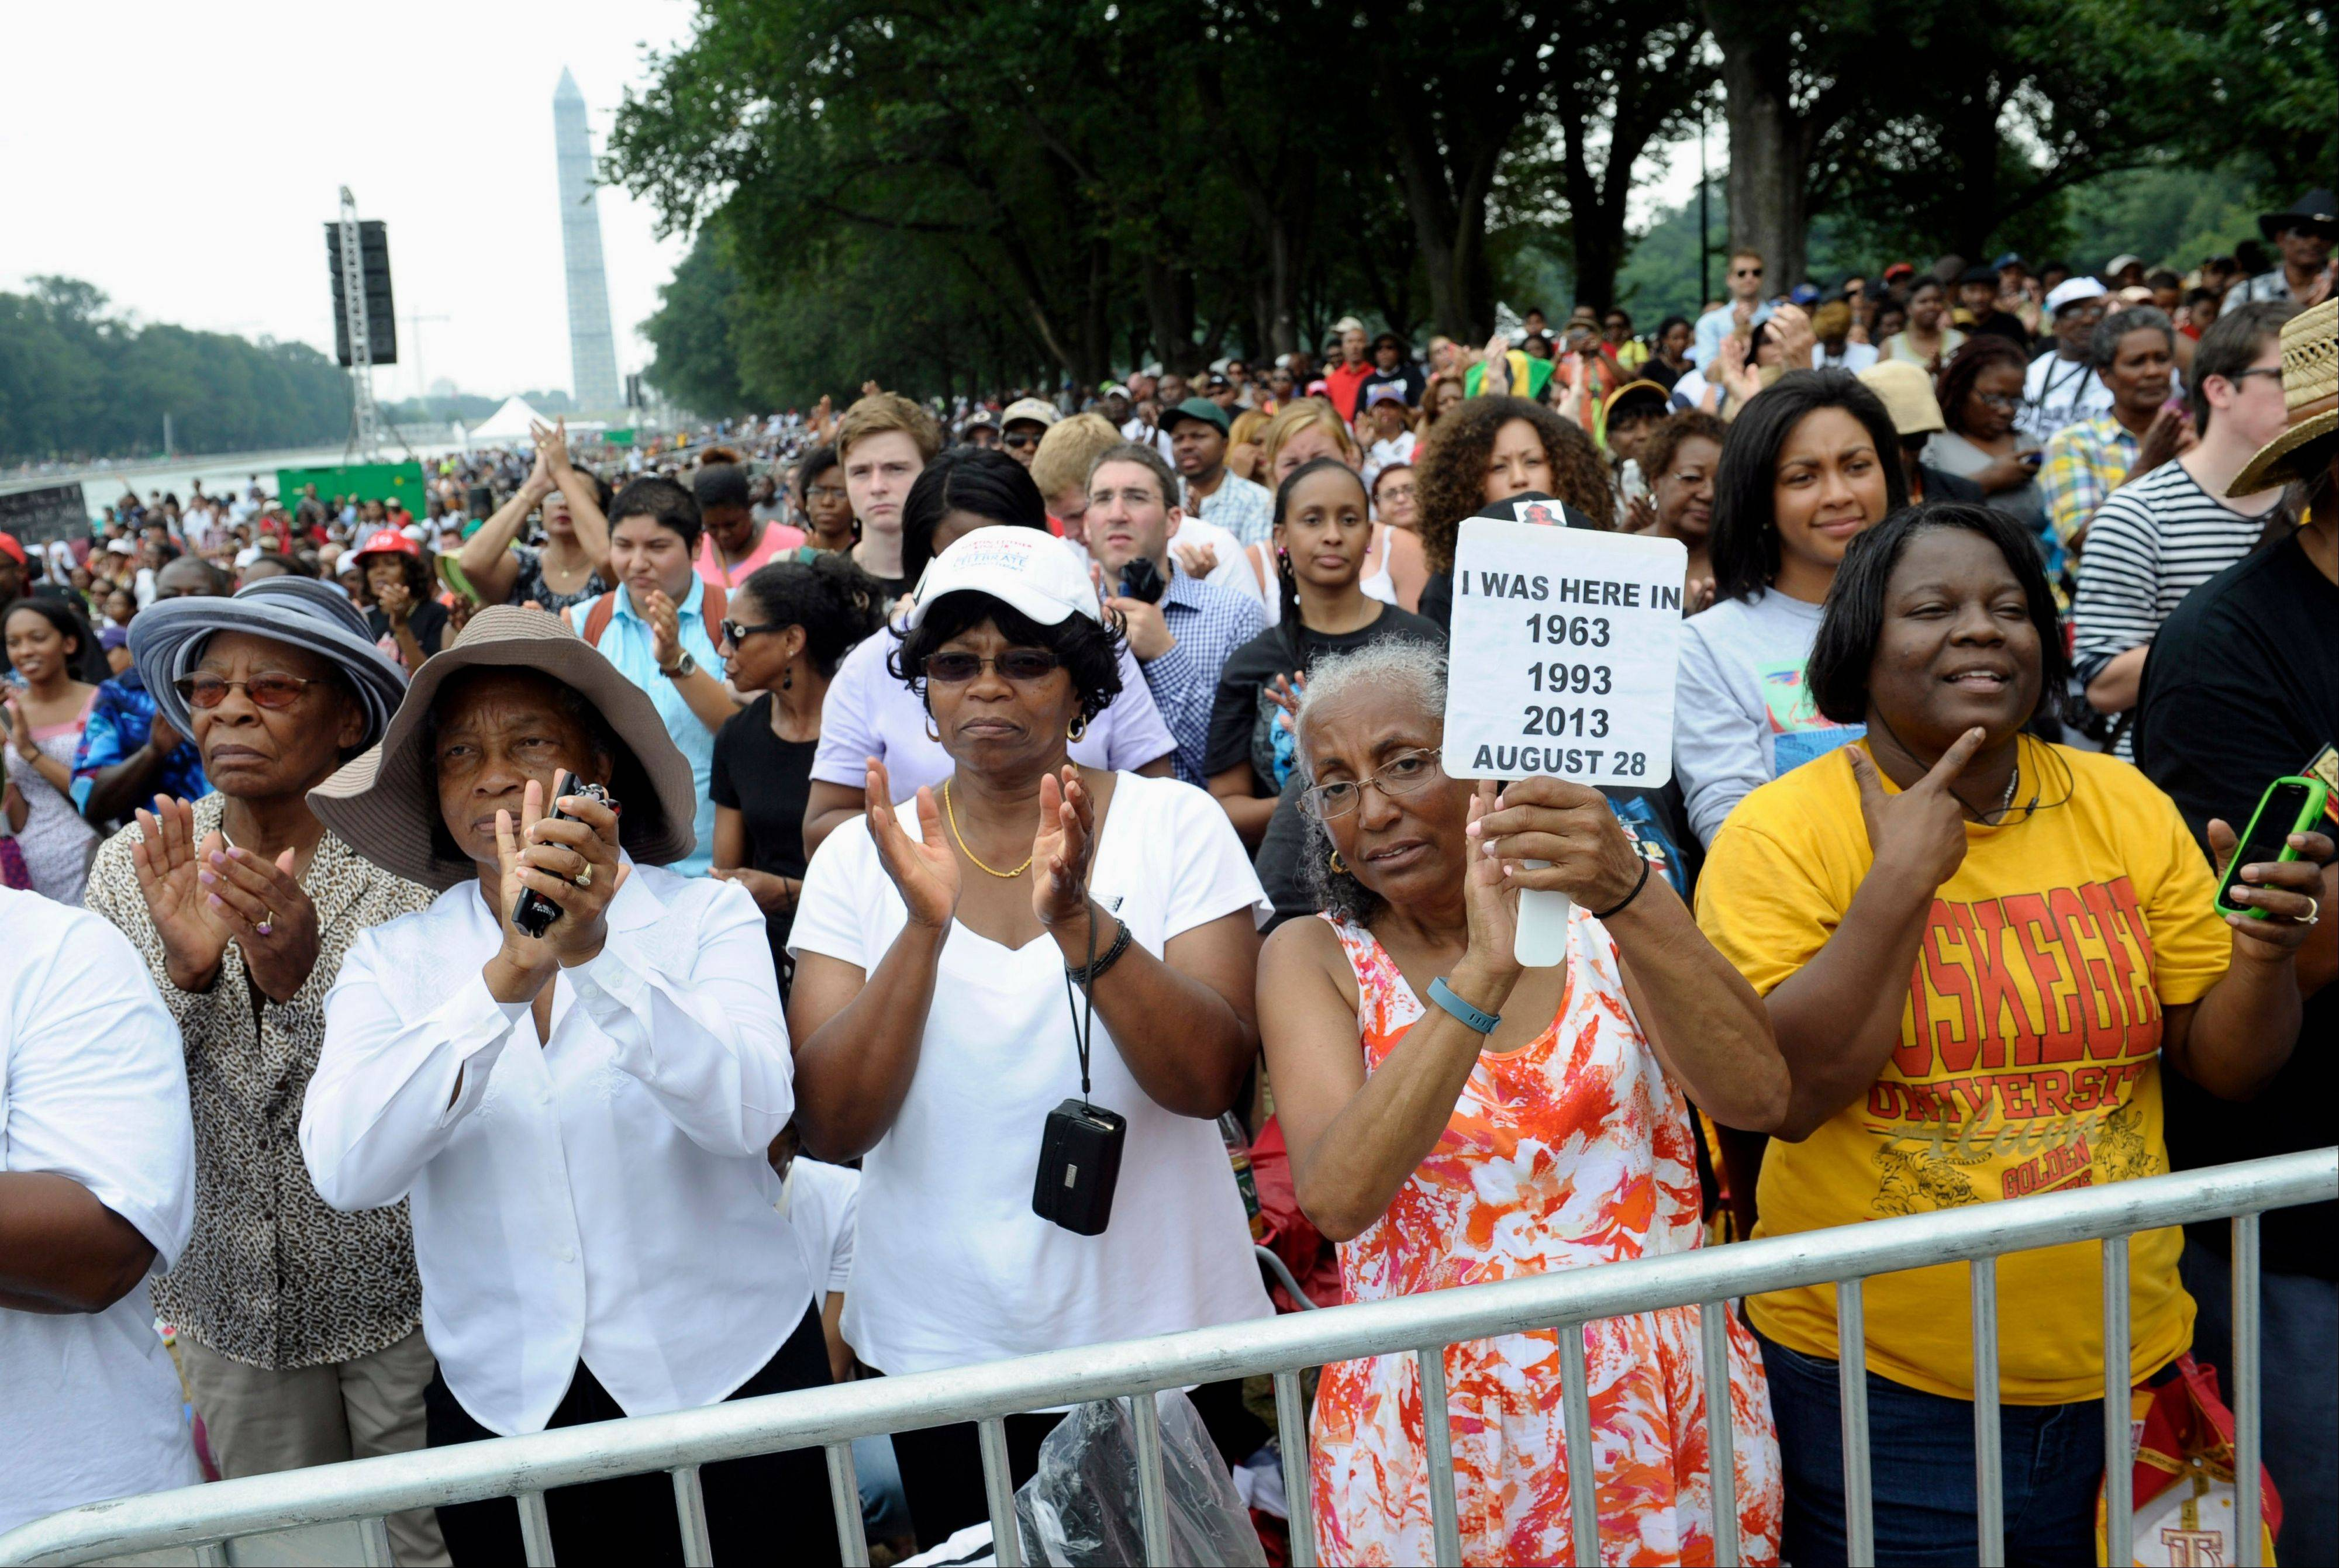 Three women who attended previous Marches on Washington, from left, Armanda Hawkins of Memphis, Vera Moore of Washington, and Betty Waller Gray of Richmond, Va., (holding sign) listen to the speakers.